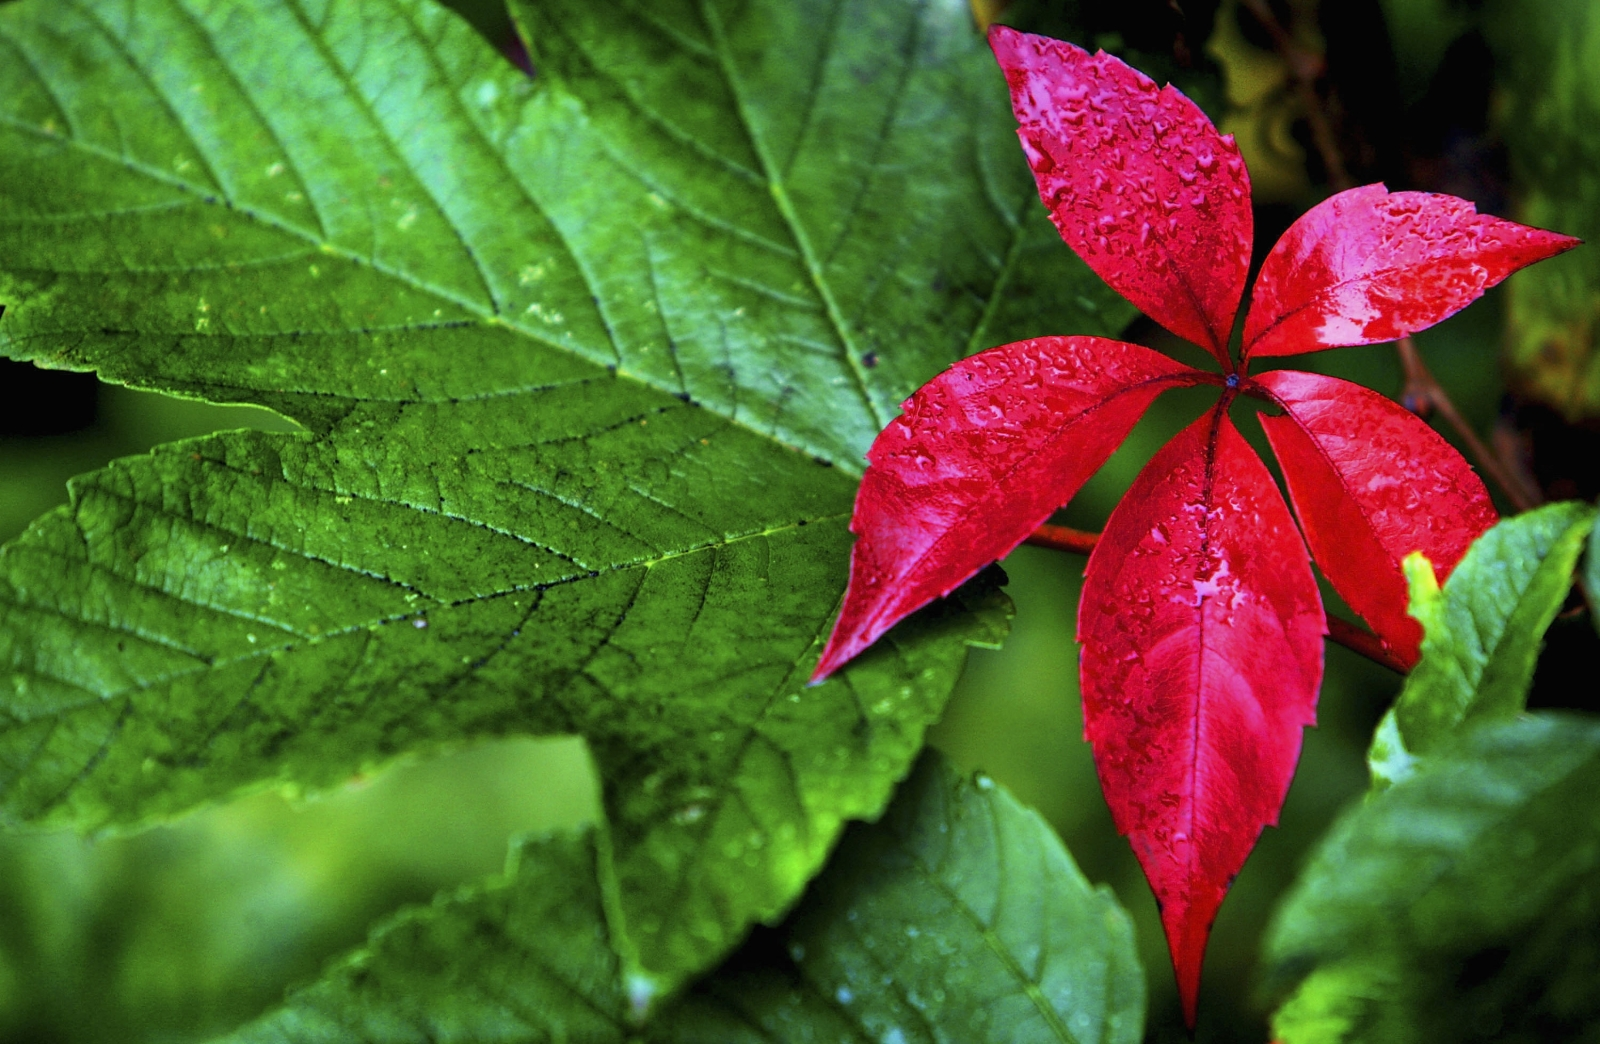 Leaf veins could extend battery life